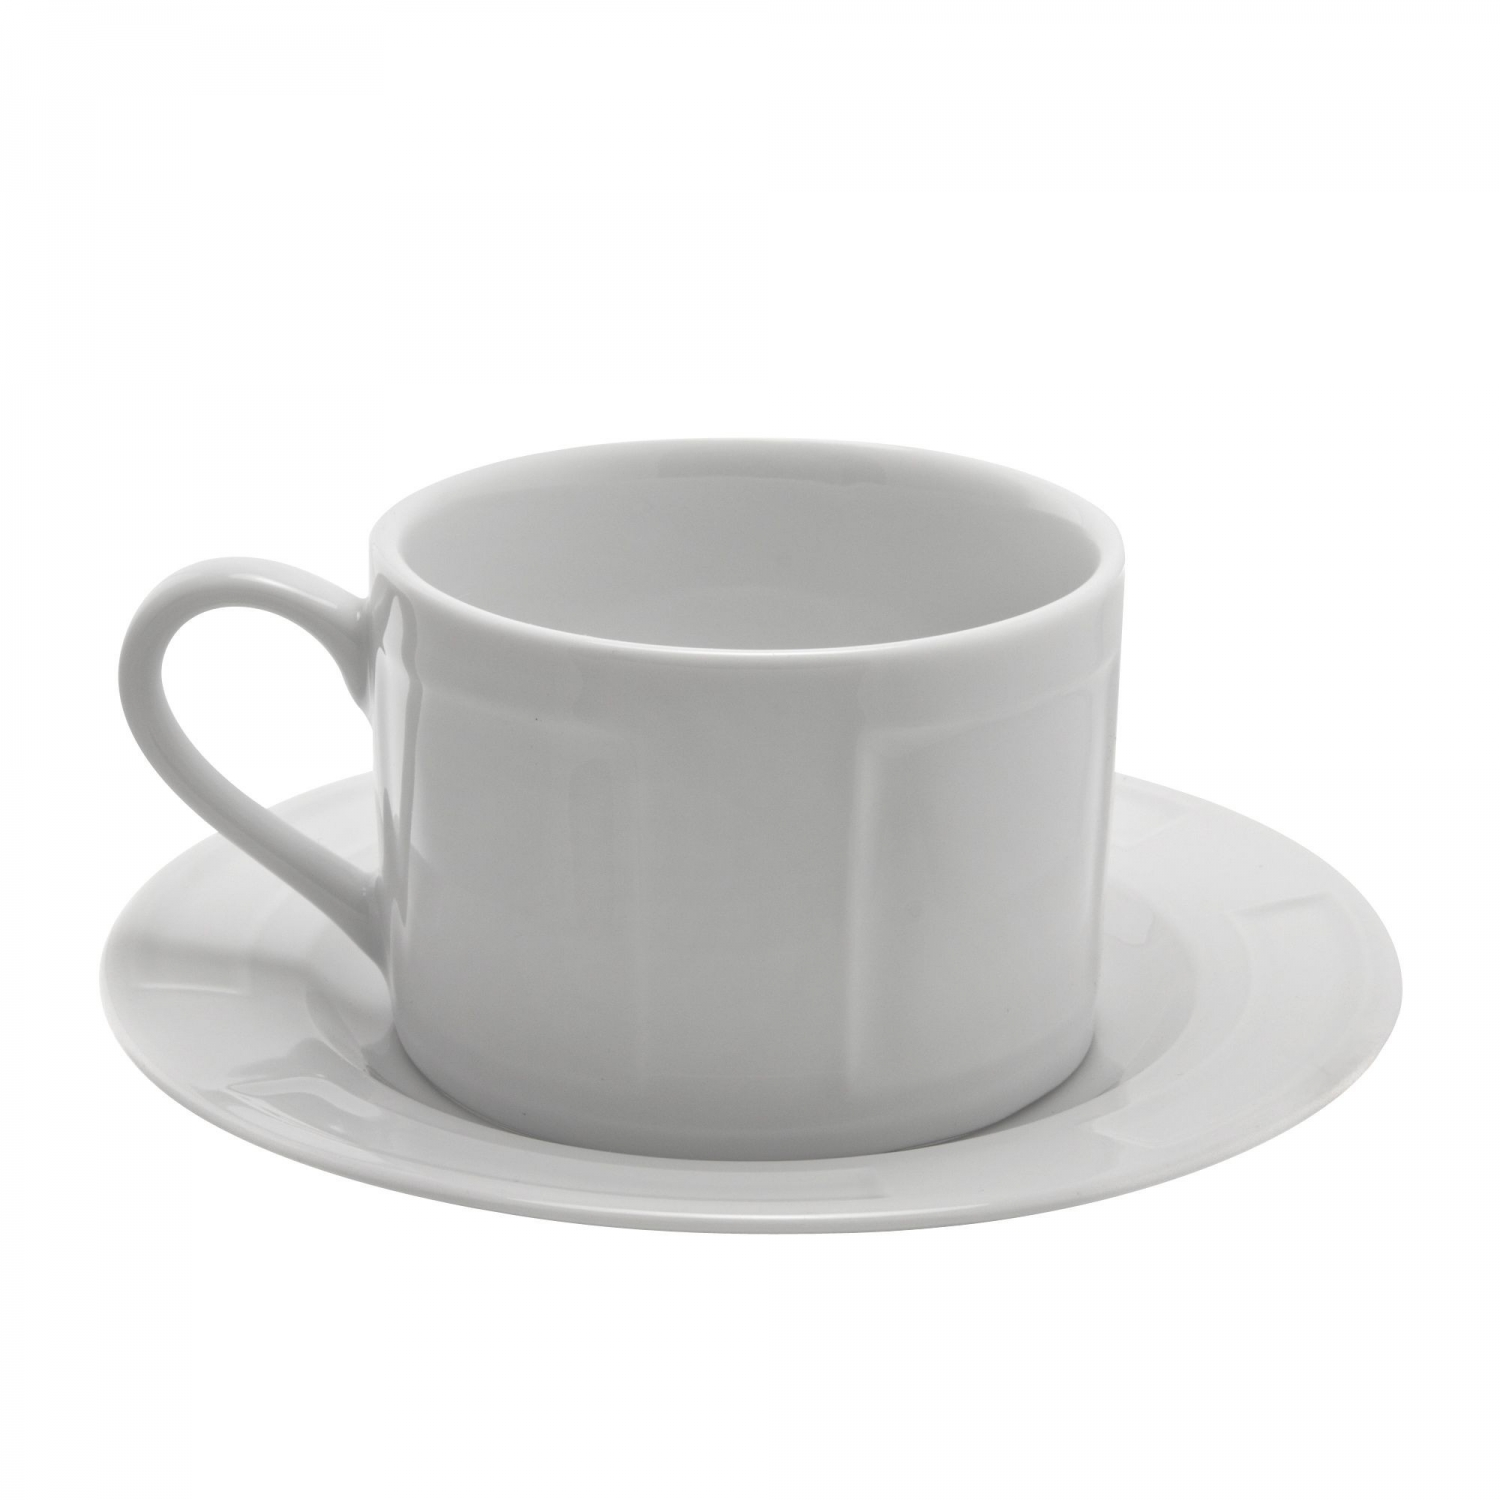 10 Strawberry Street SORR0009 Sorrento White Cup and Saucer 9 oz.